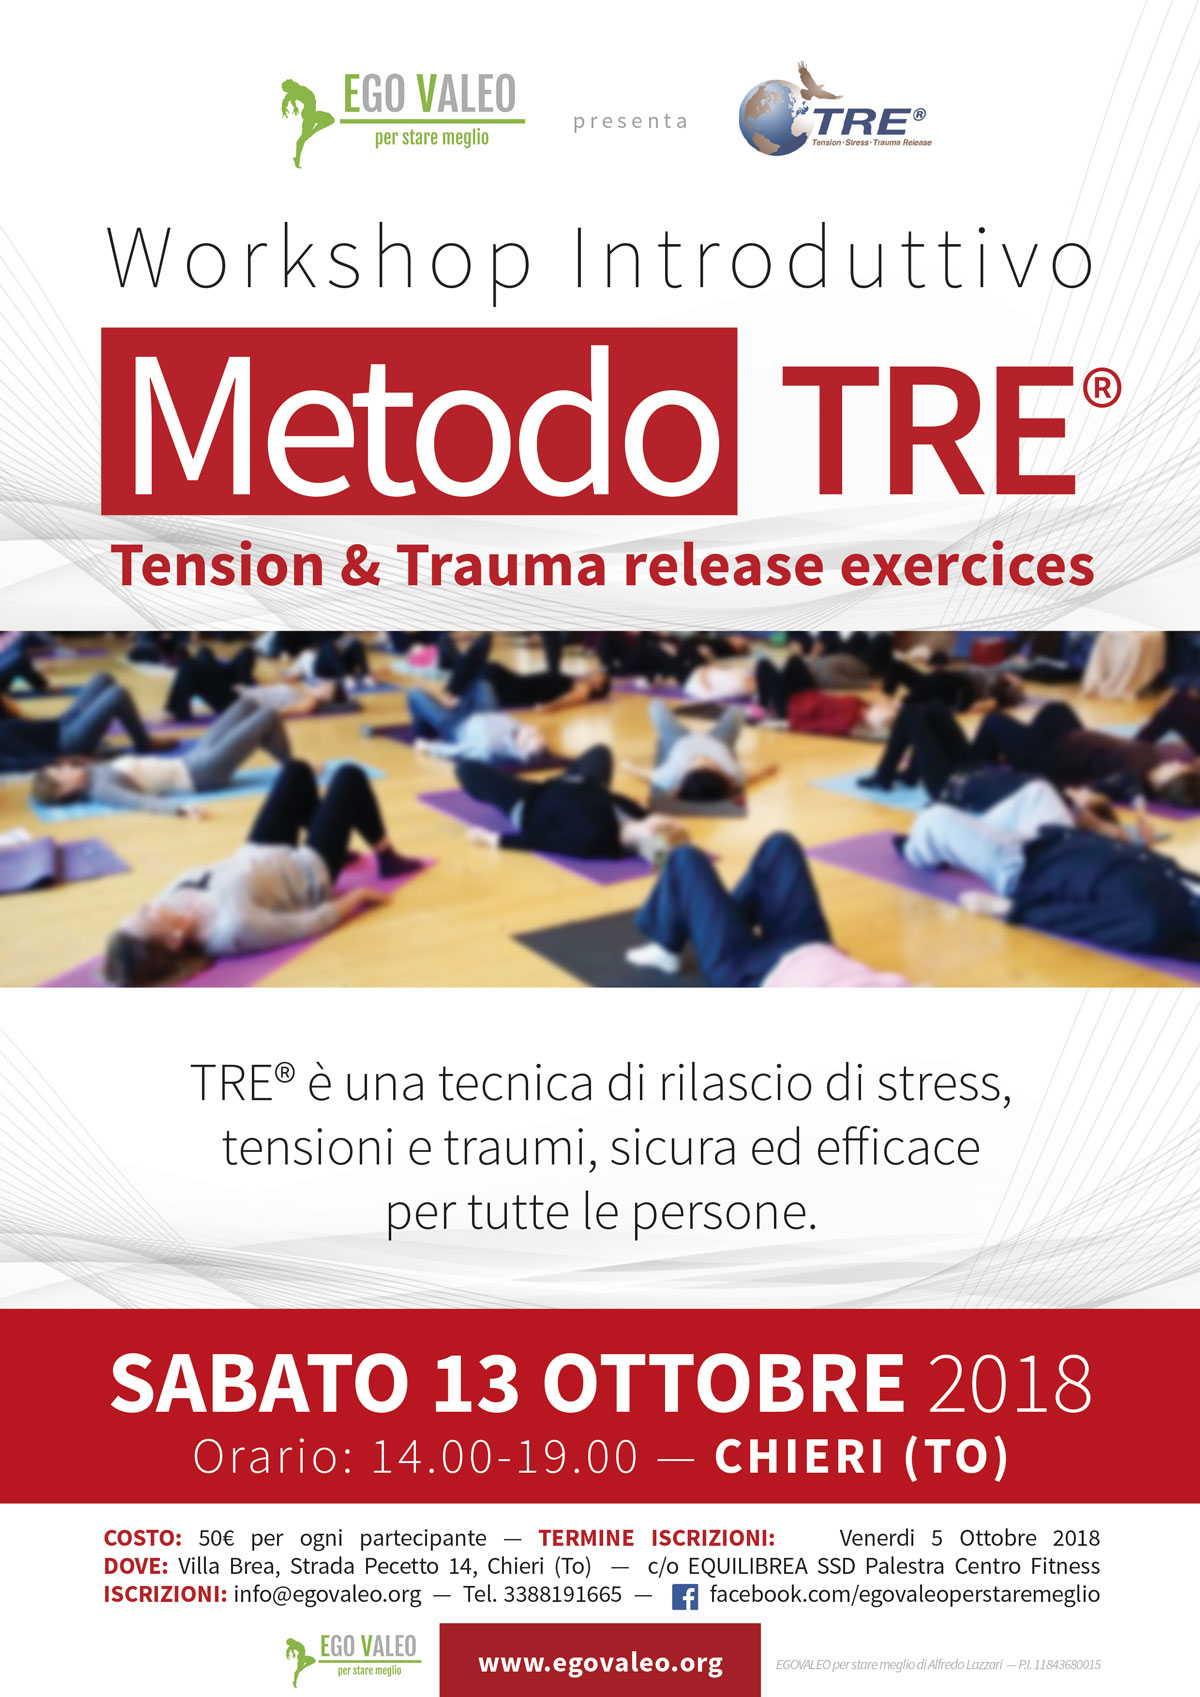 Metodo TRE – workshop introduttivo